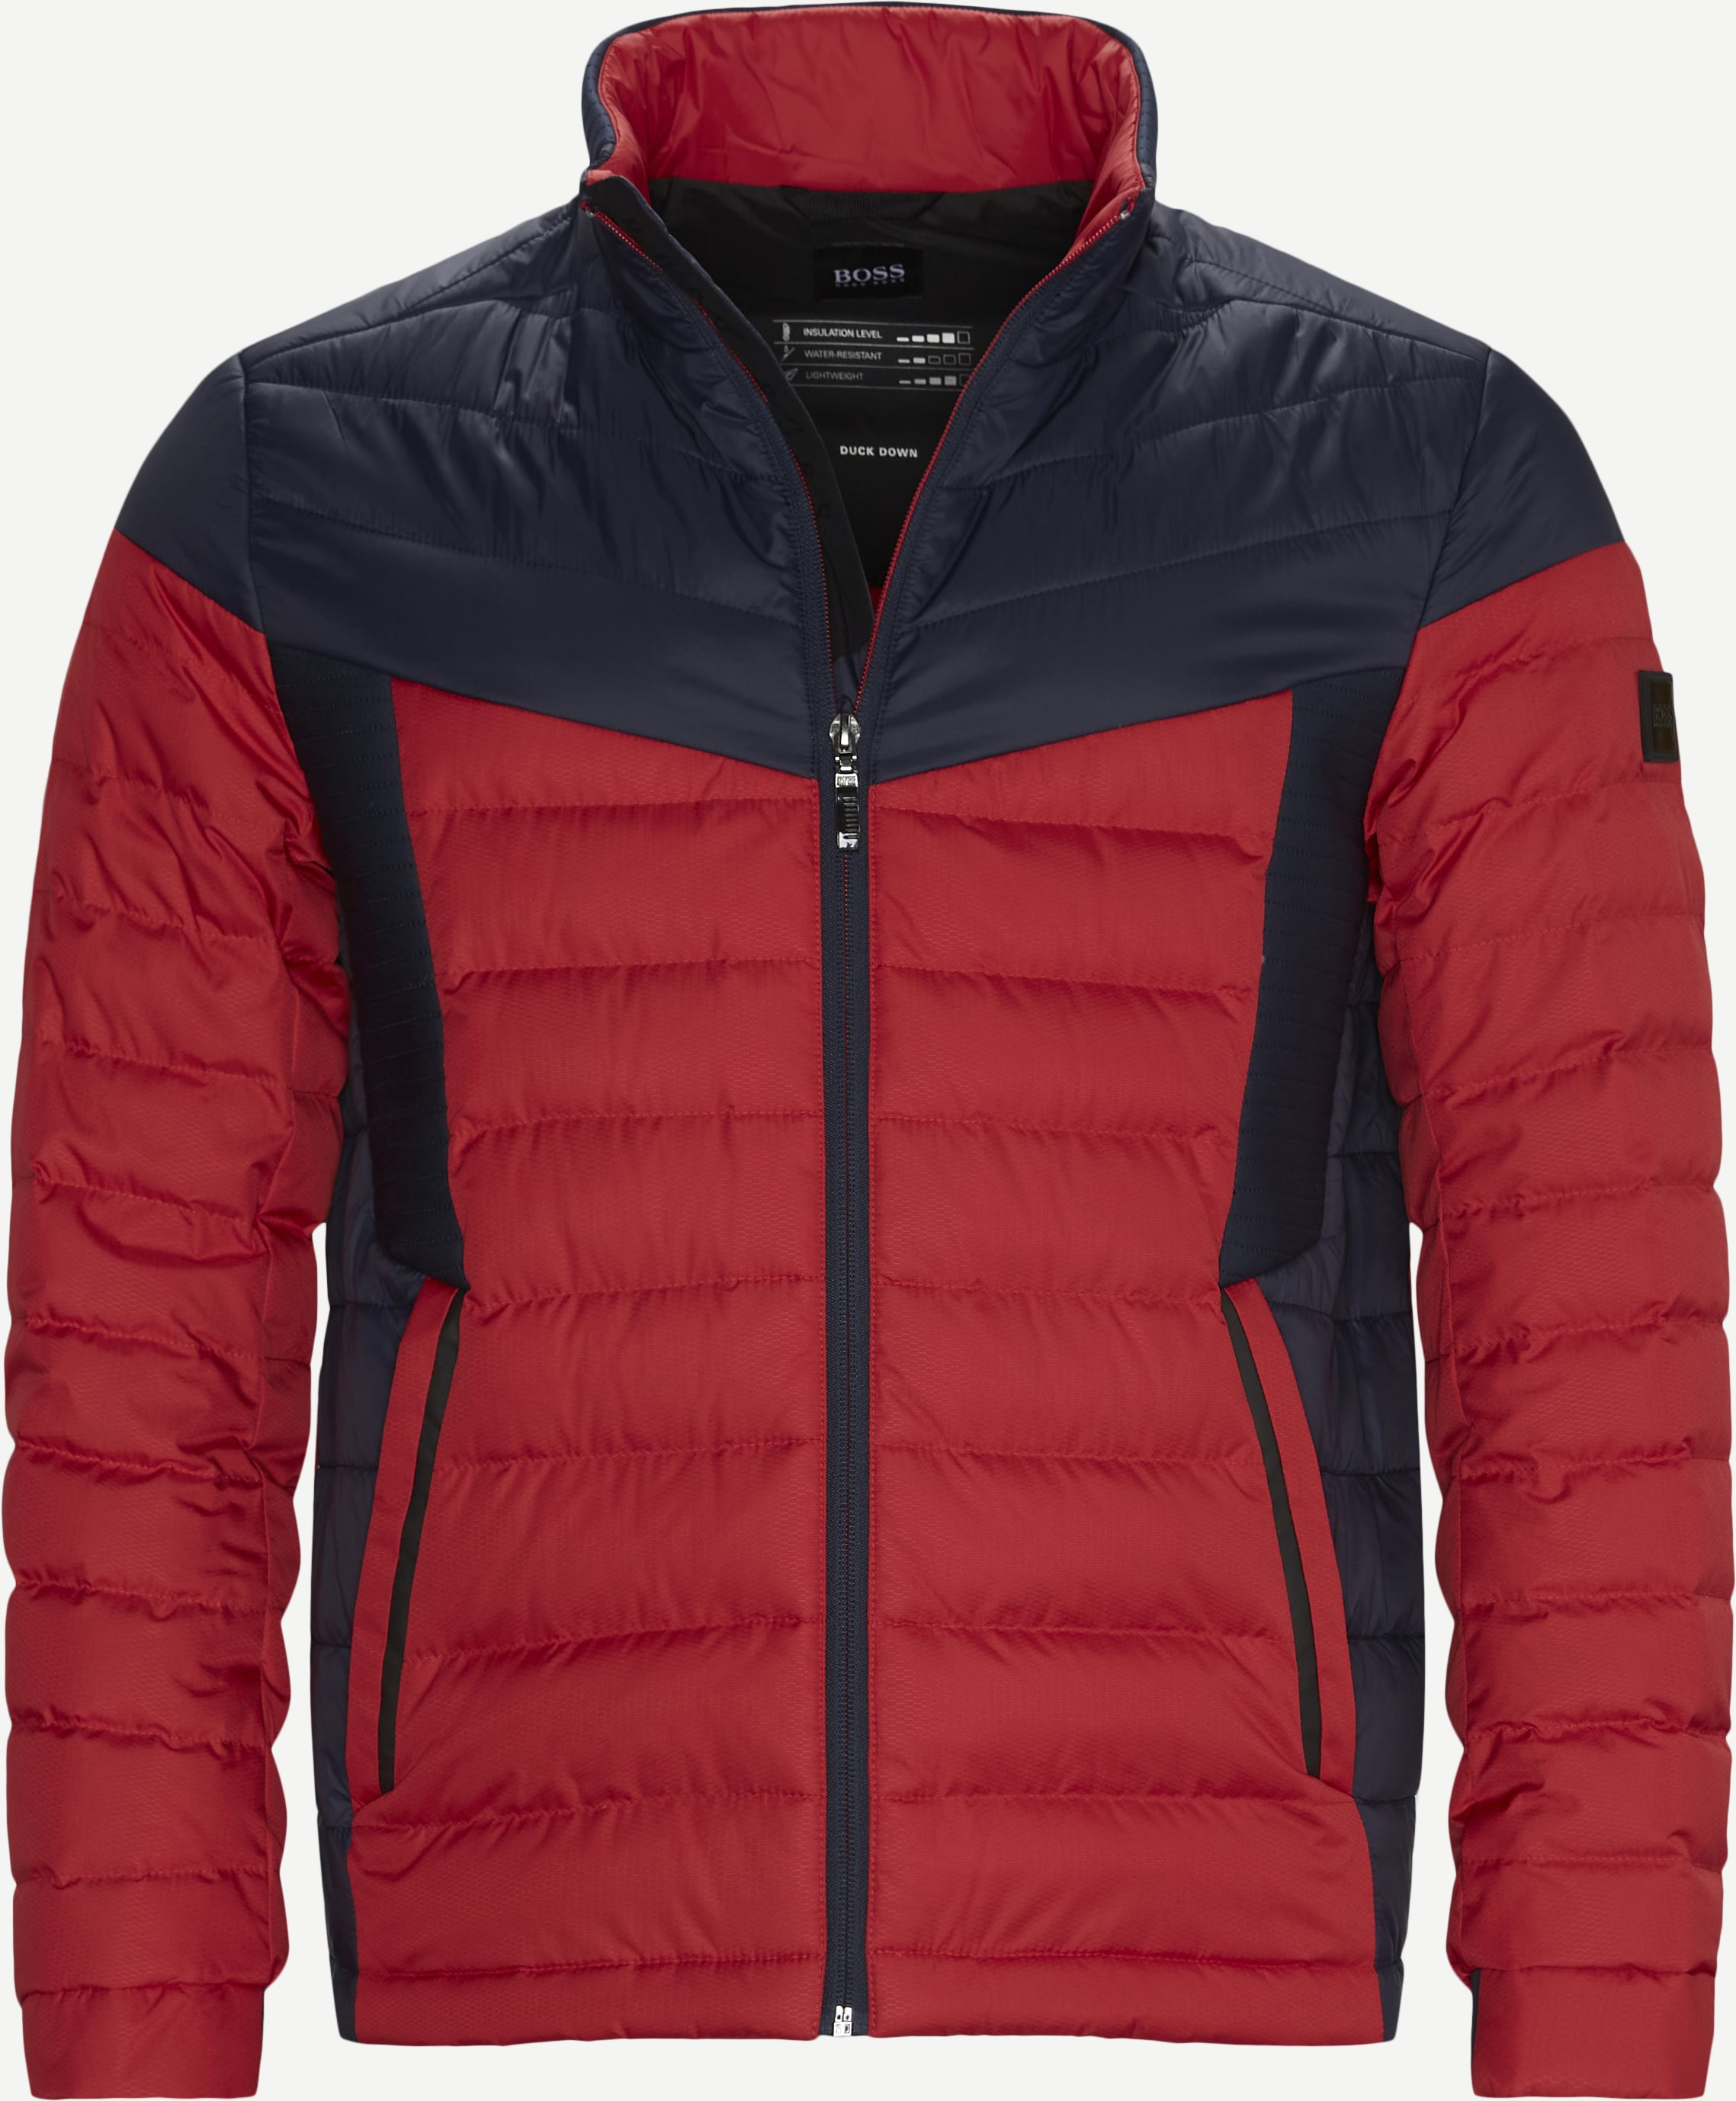 J_Vail Jacket - Jackets - Regular - Red